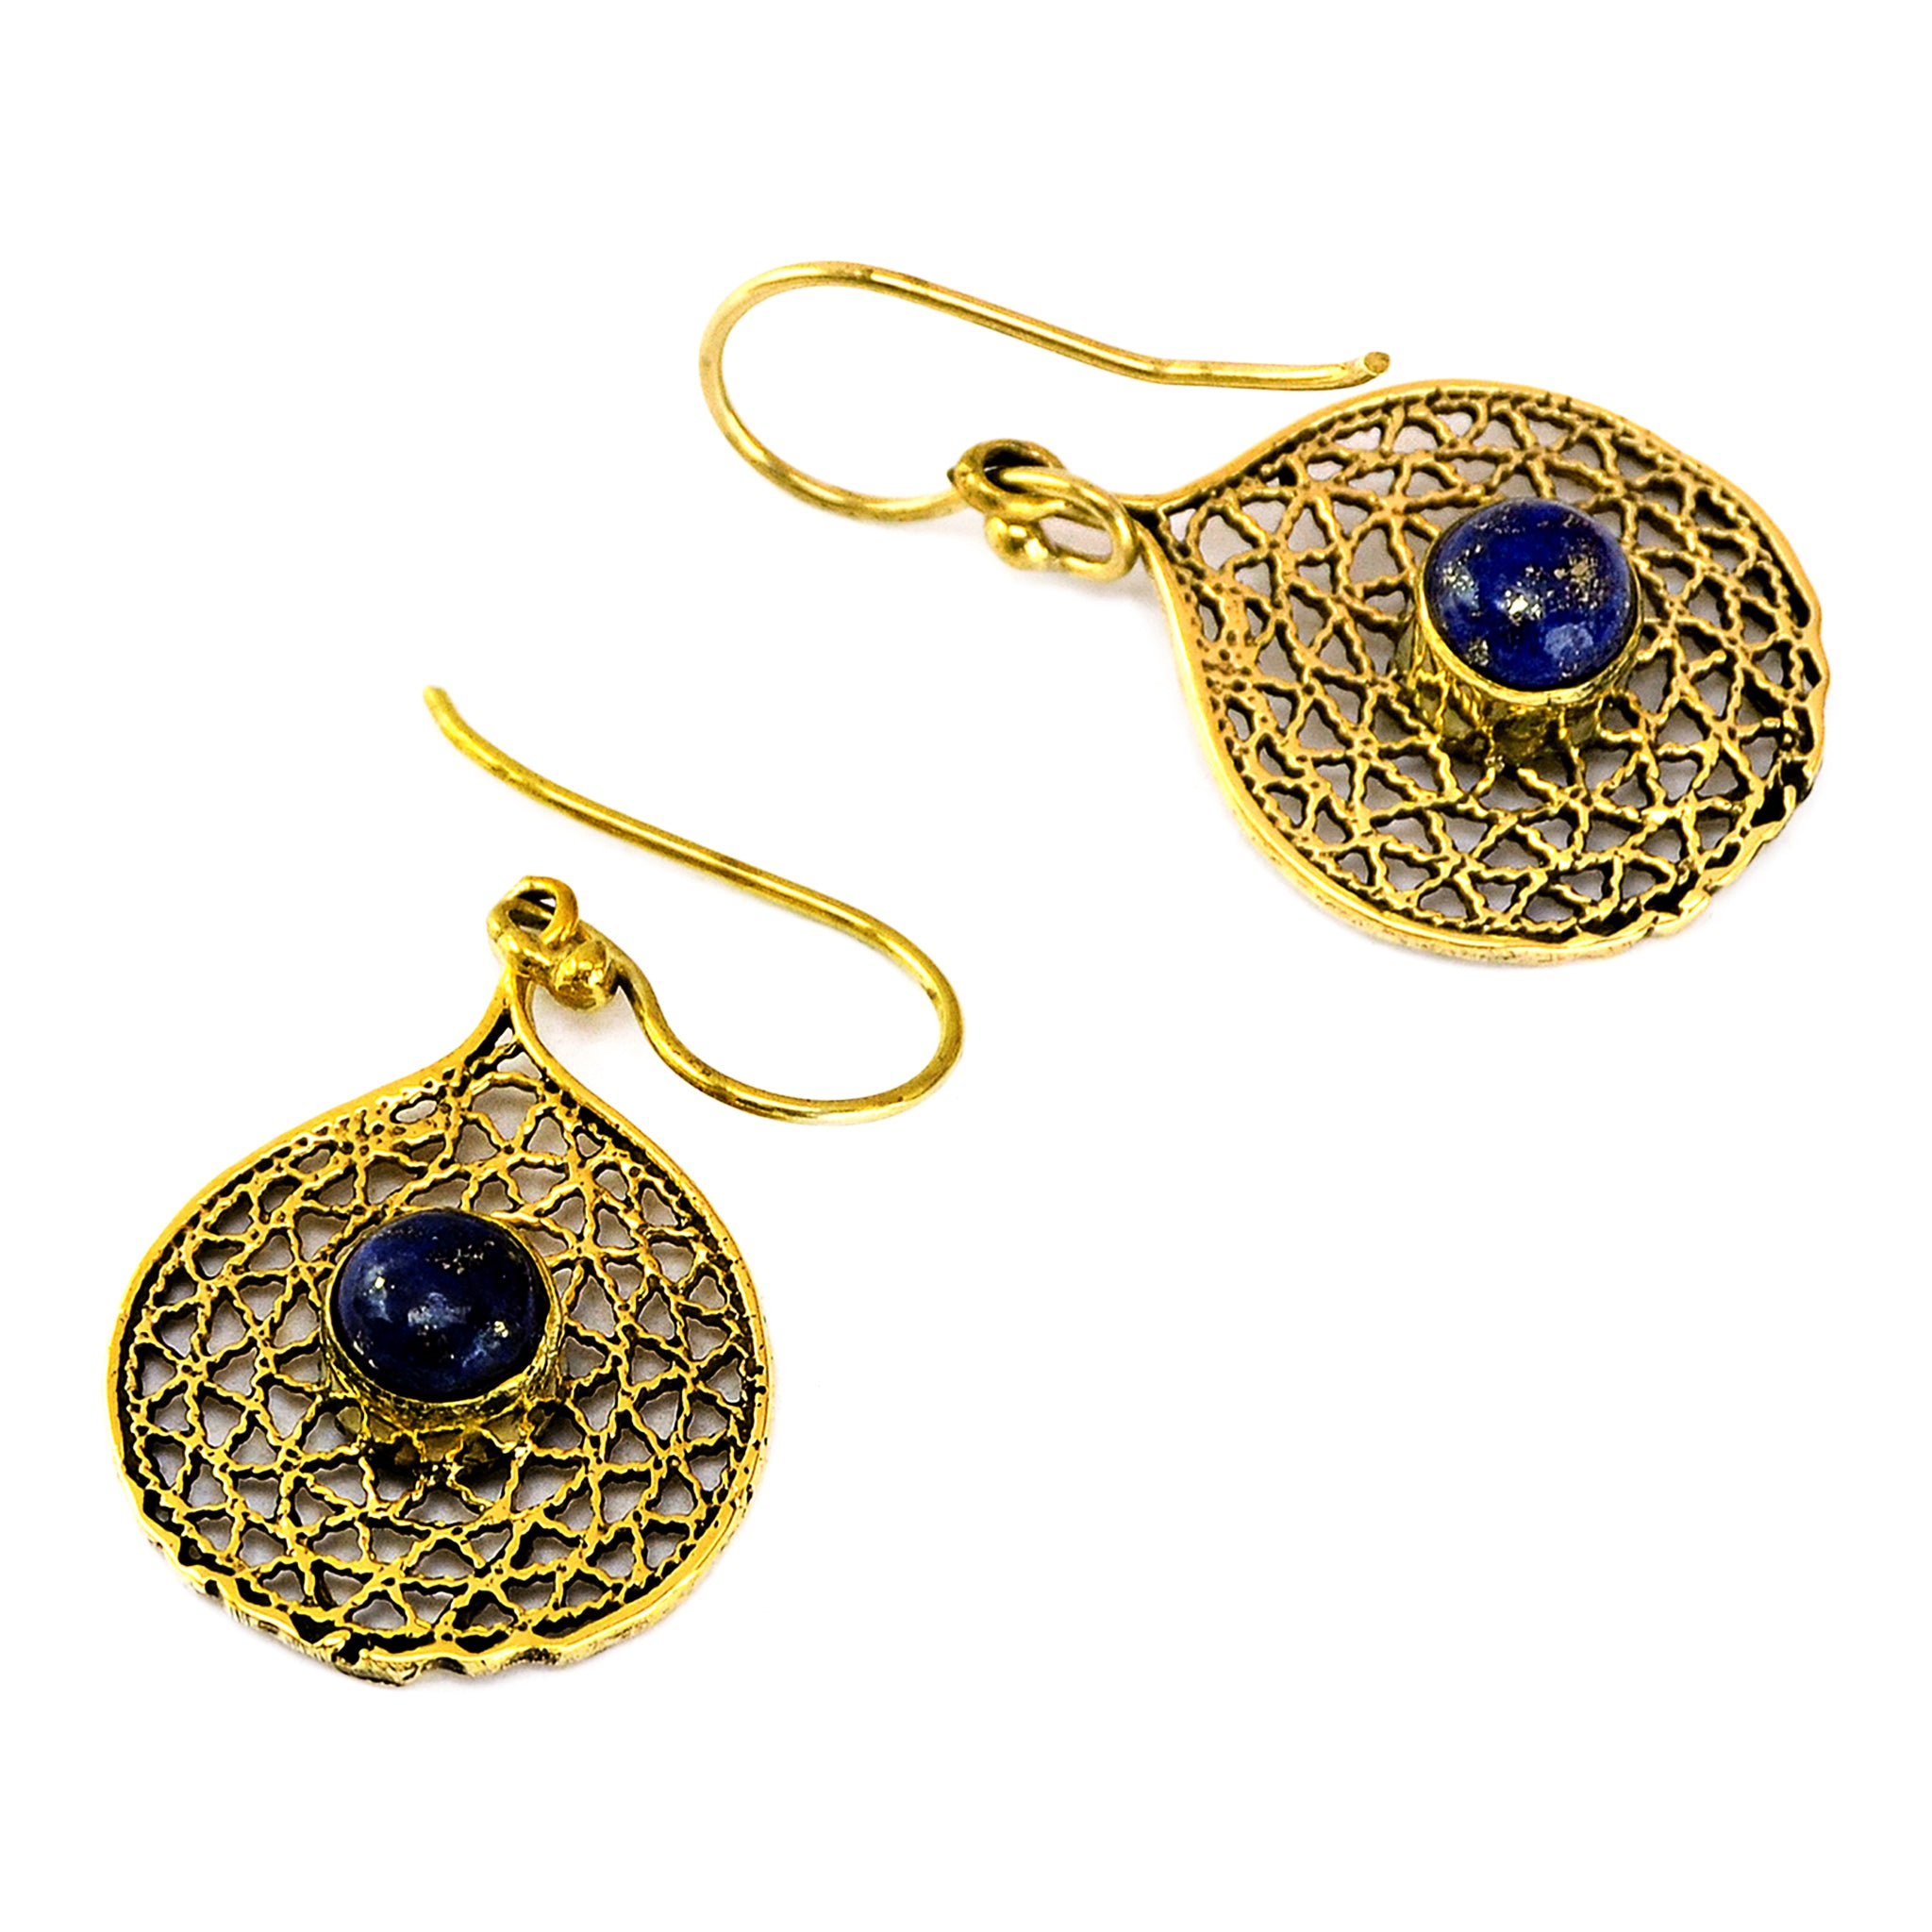 Indian filigree earrings with lapis lazuli stone